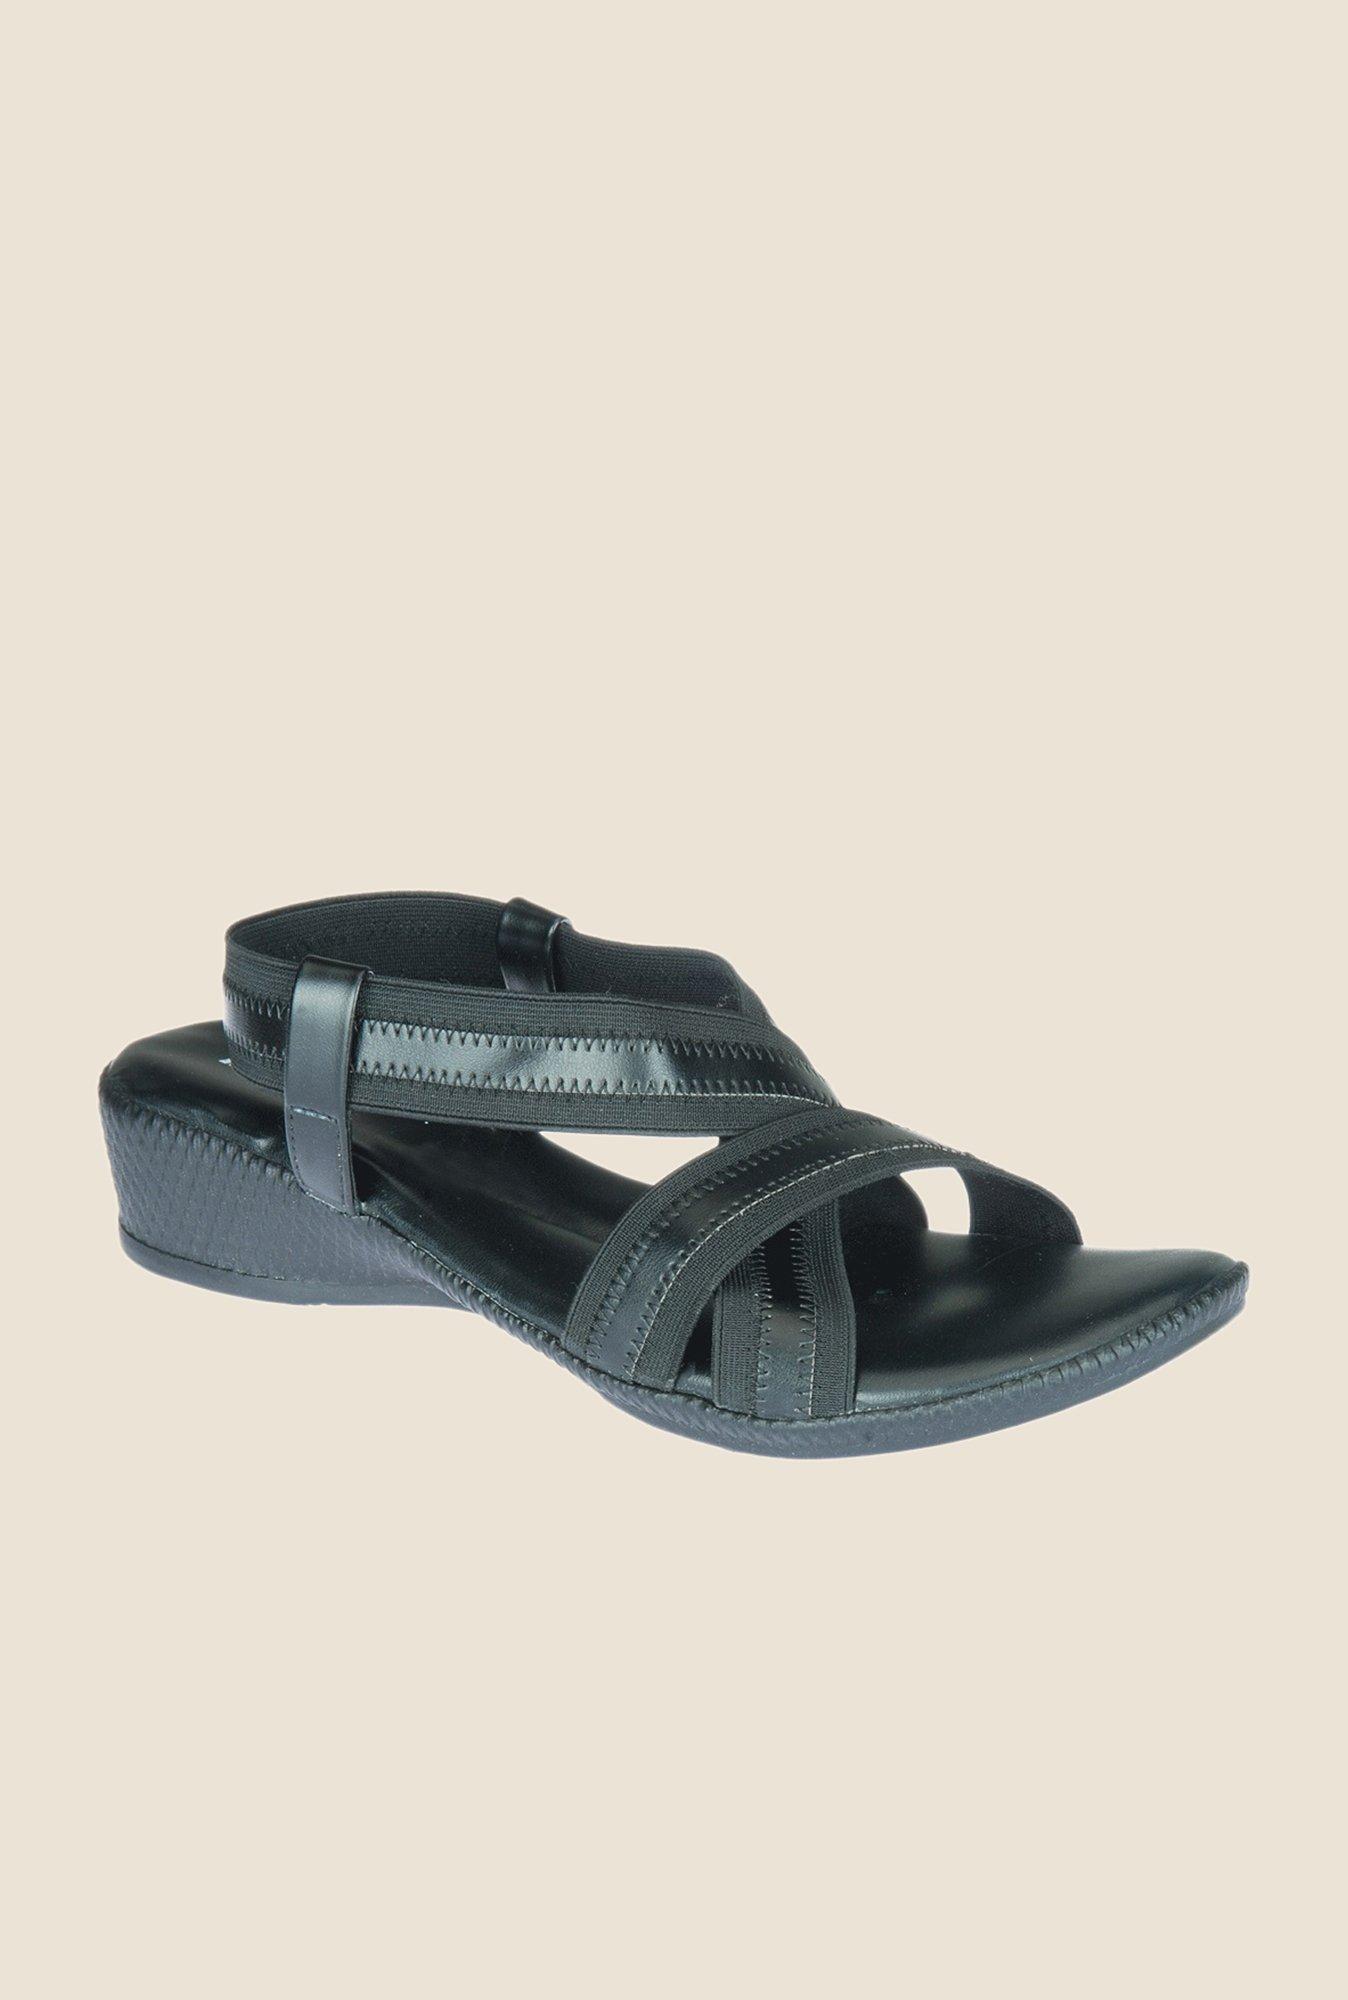 Khadim's Black Sling Back Wedges